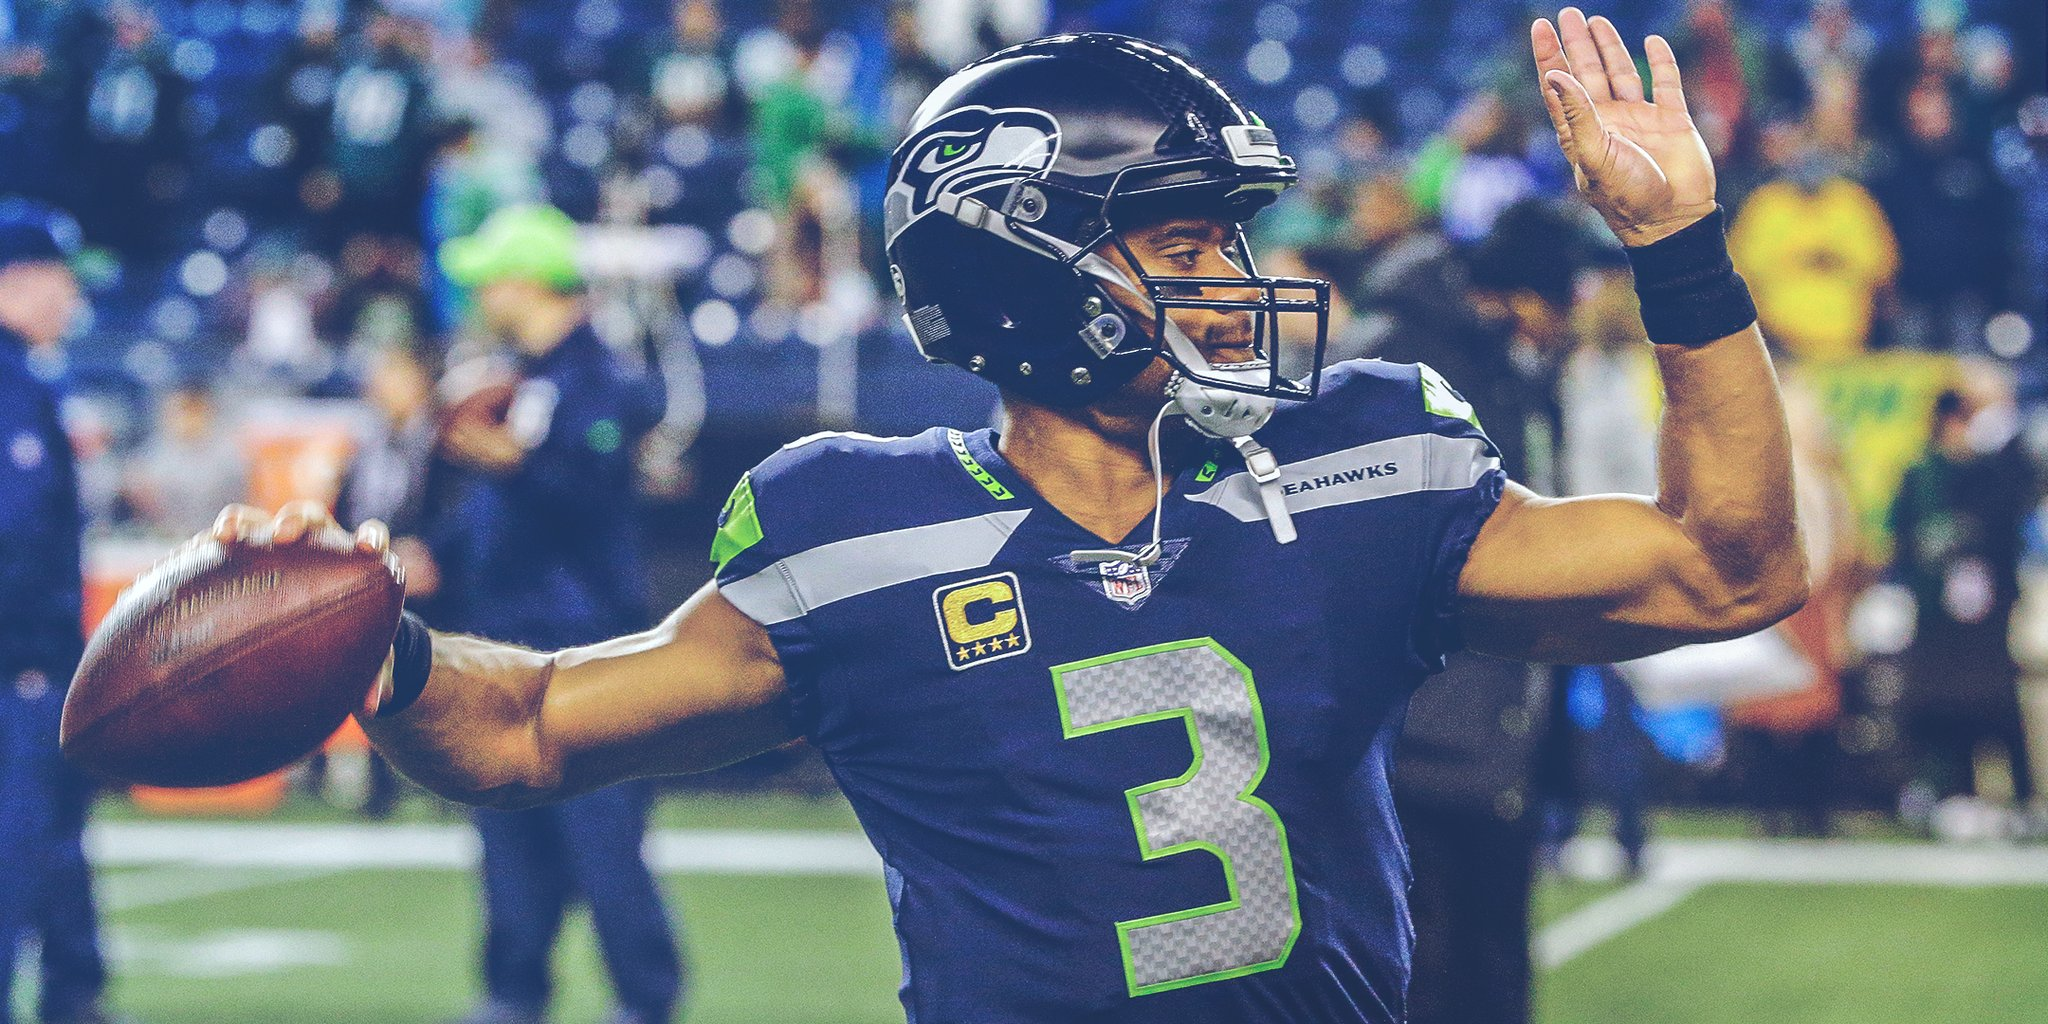 Russell Wilson na vitória do Seattle Seahawks sobre o Philadelphia Eagles